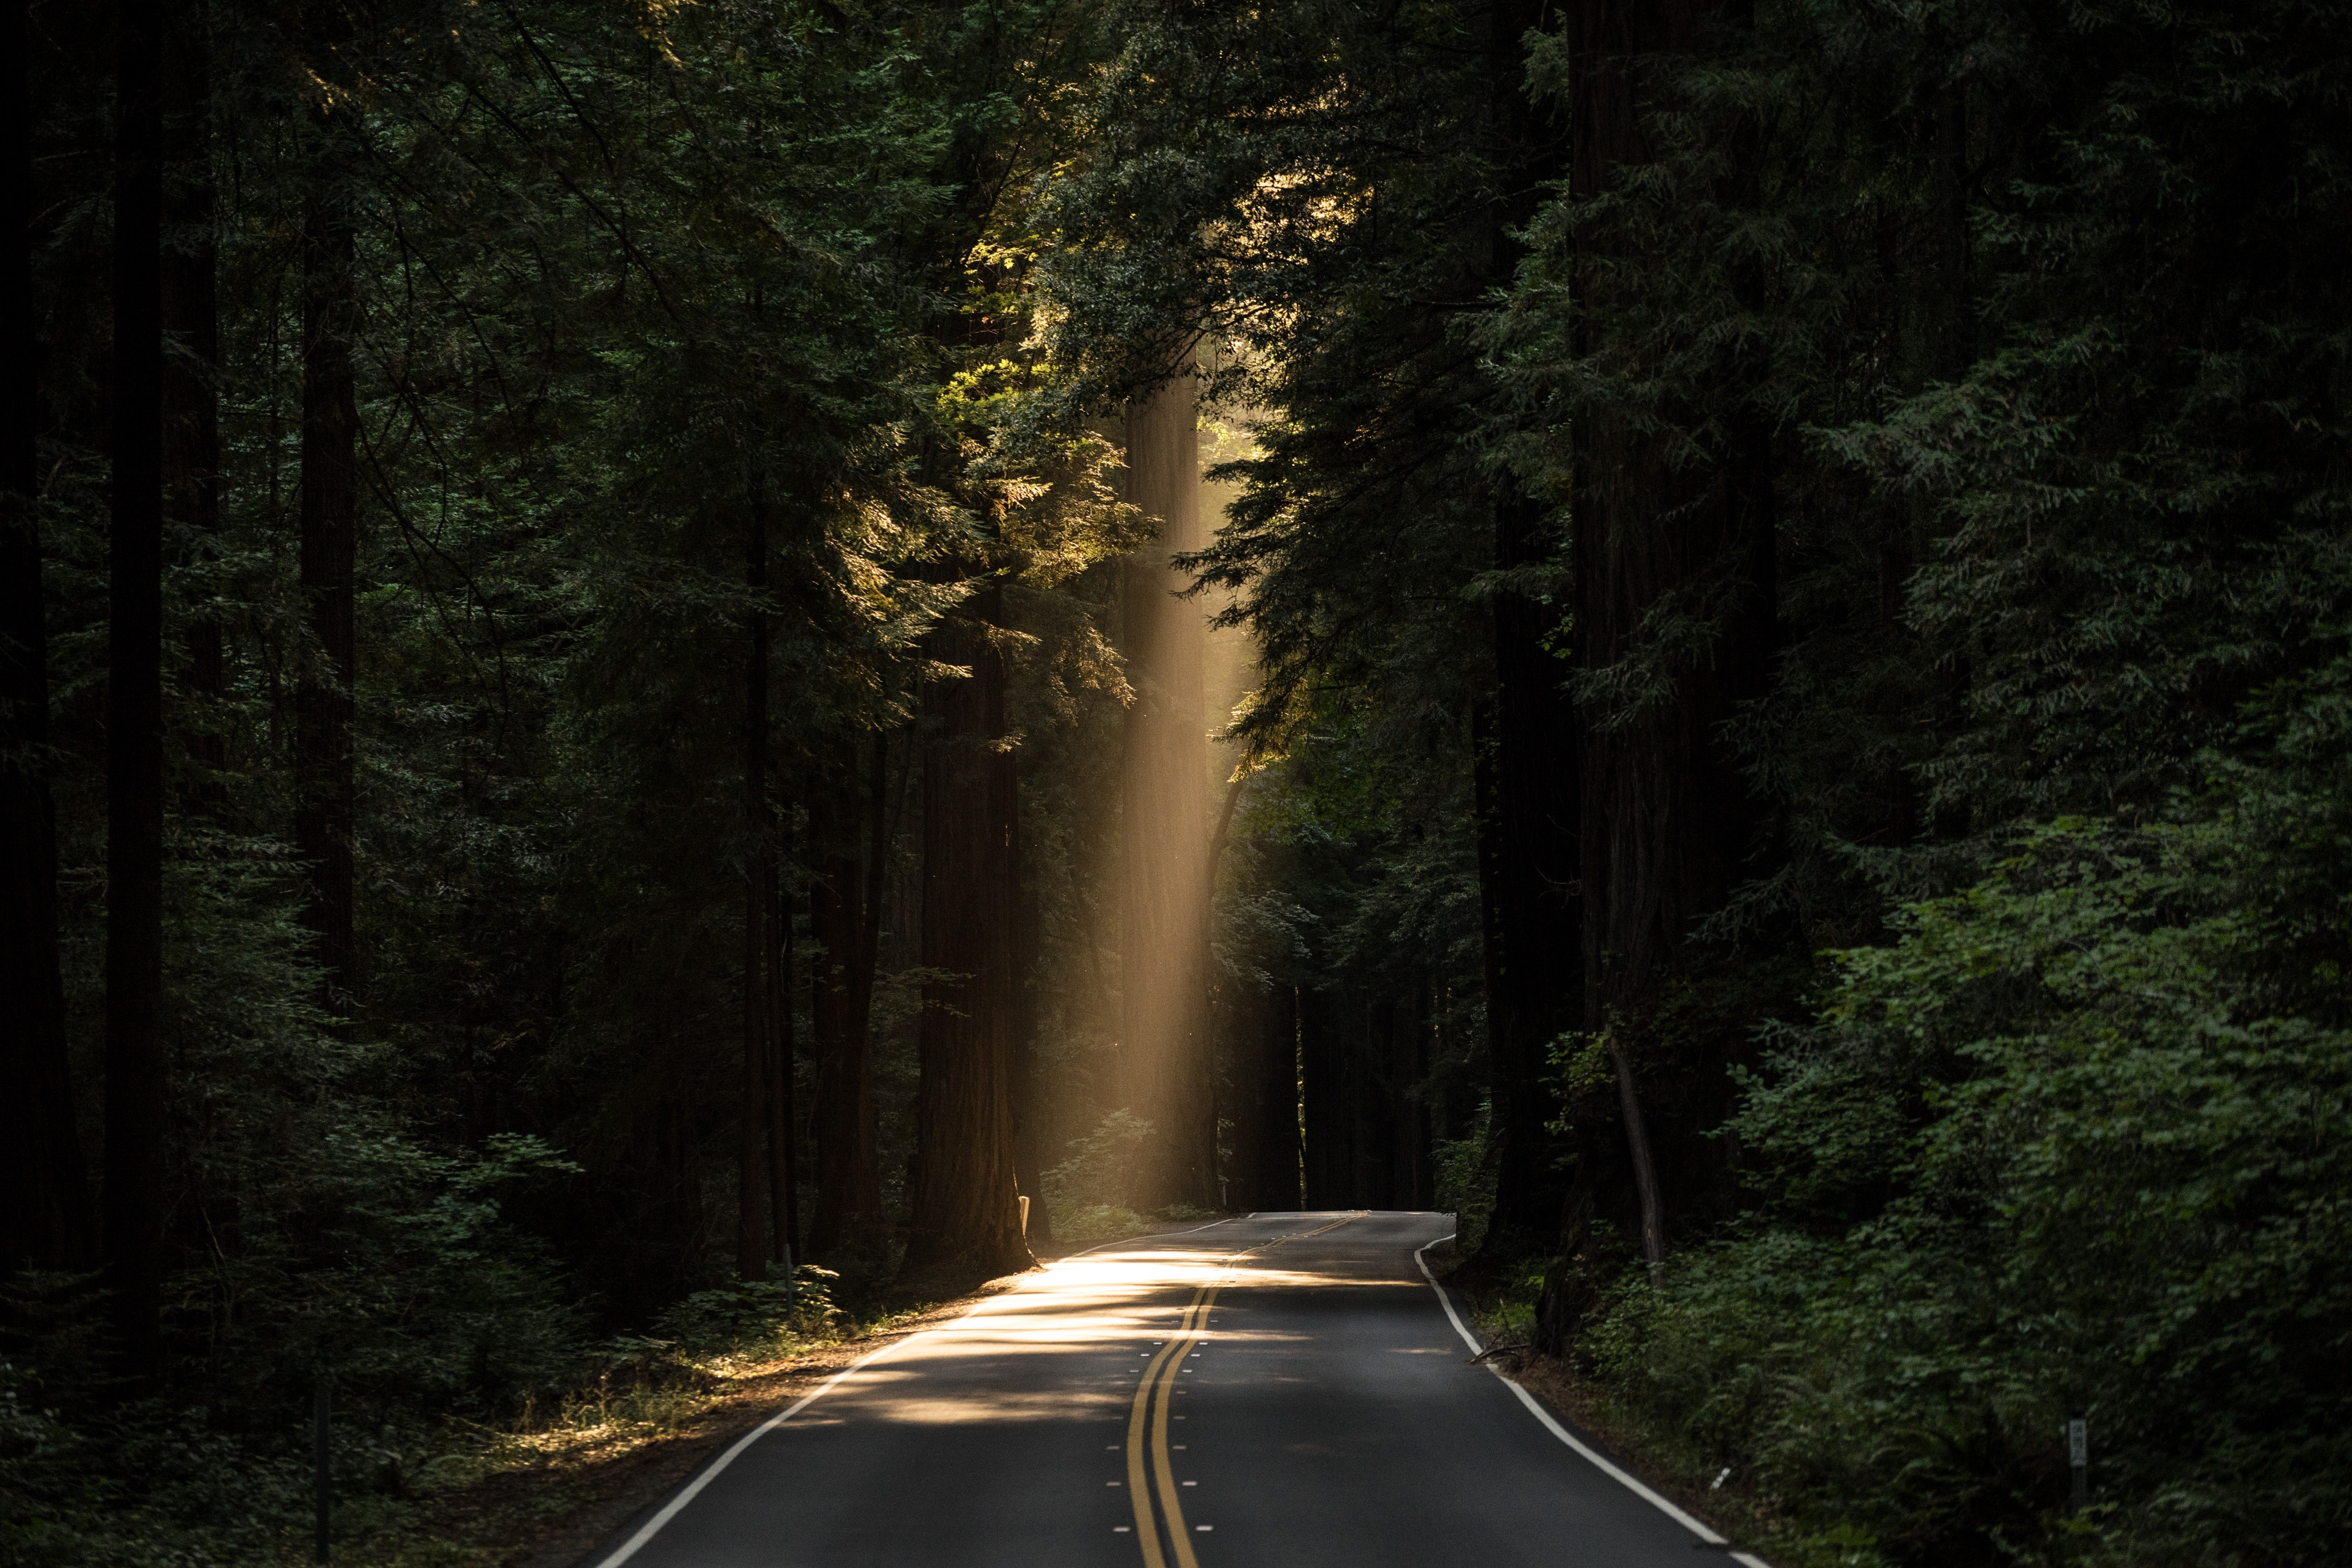 The sunlight shines through a narrow spot above a heavily treed paved road in the middle of a forest